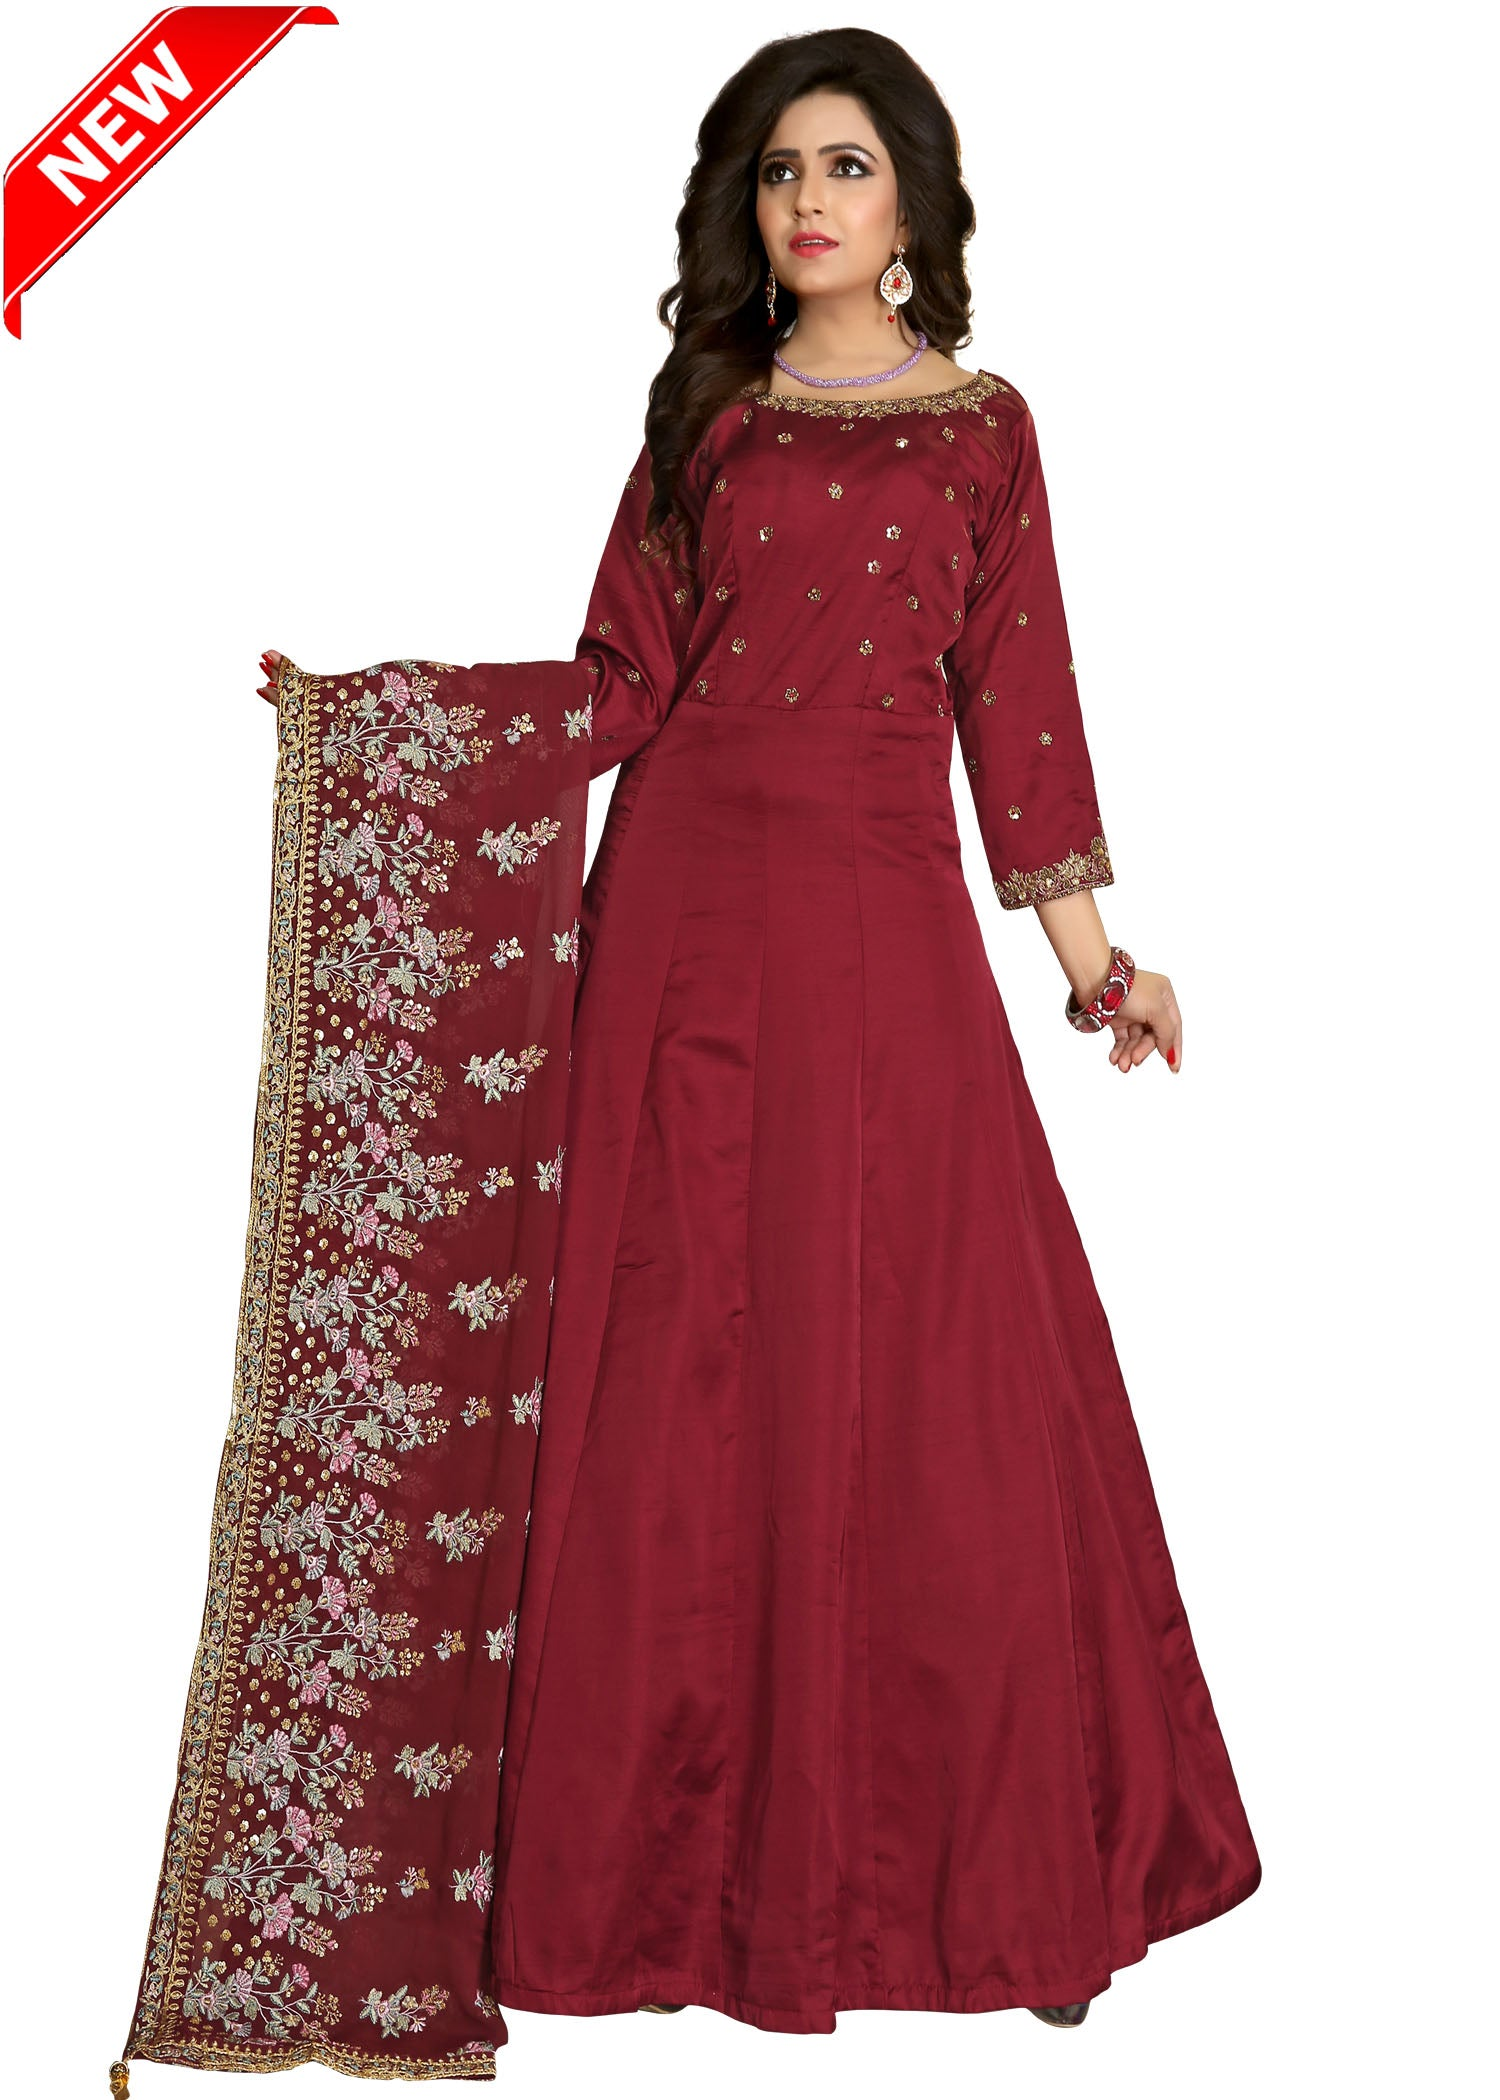 Silk Anarkali Suit with contrast hand embroider-Maroon